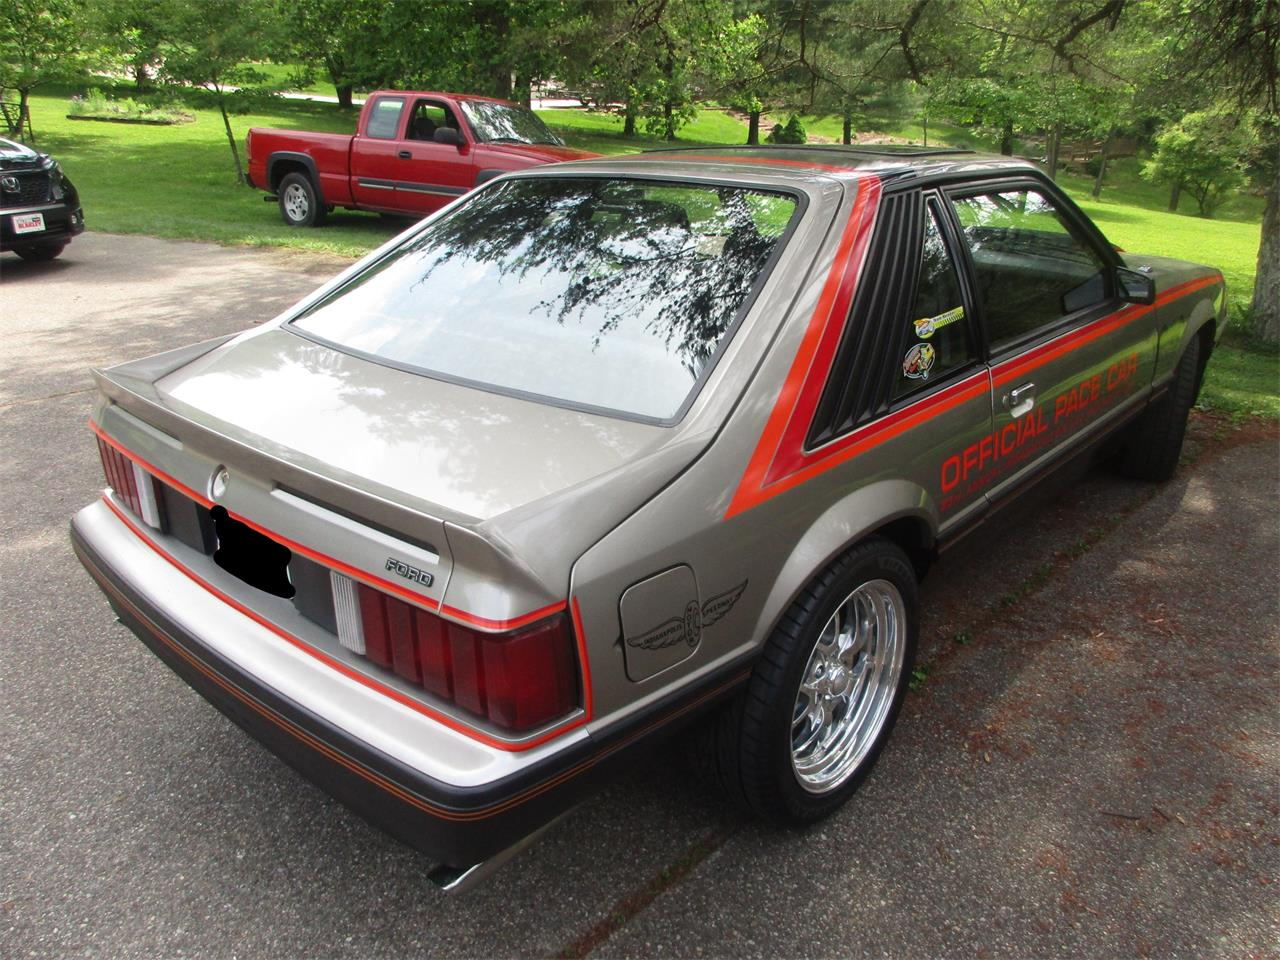 Large Picture of 1979 Mustang located in Kentucky - $29,500.00 Offered by a Private Seller - Q2ZG